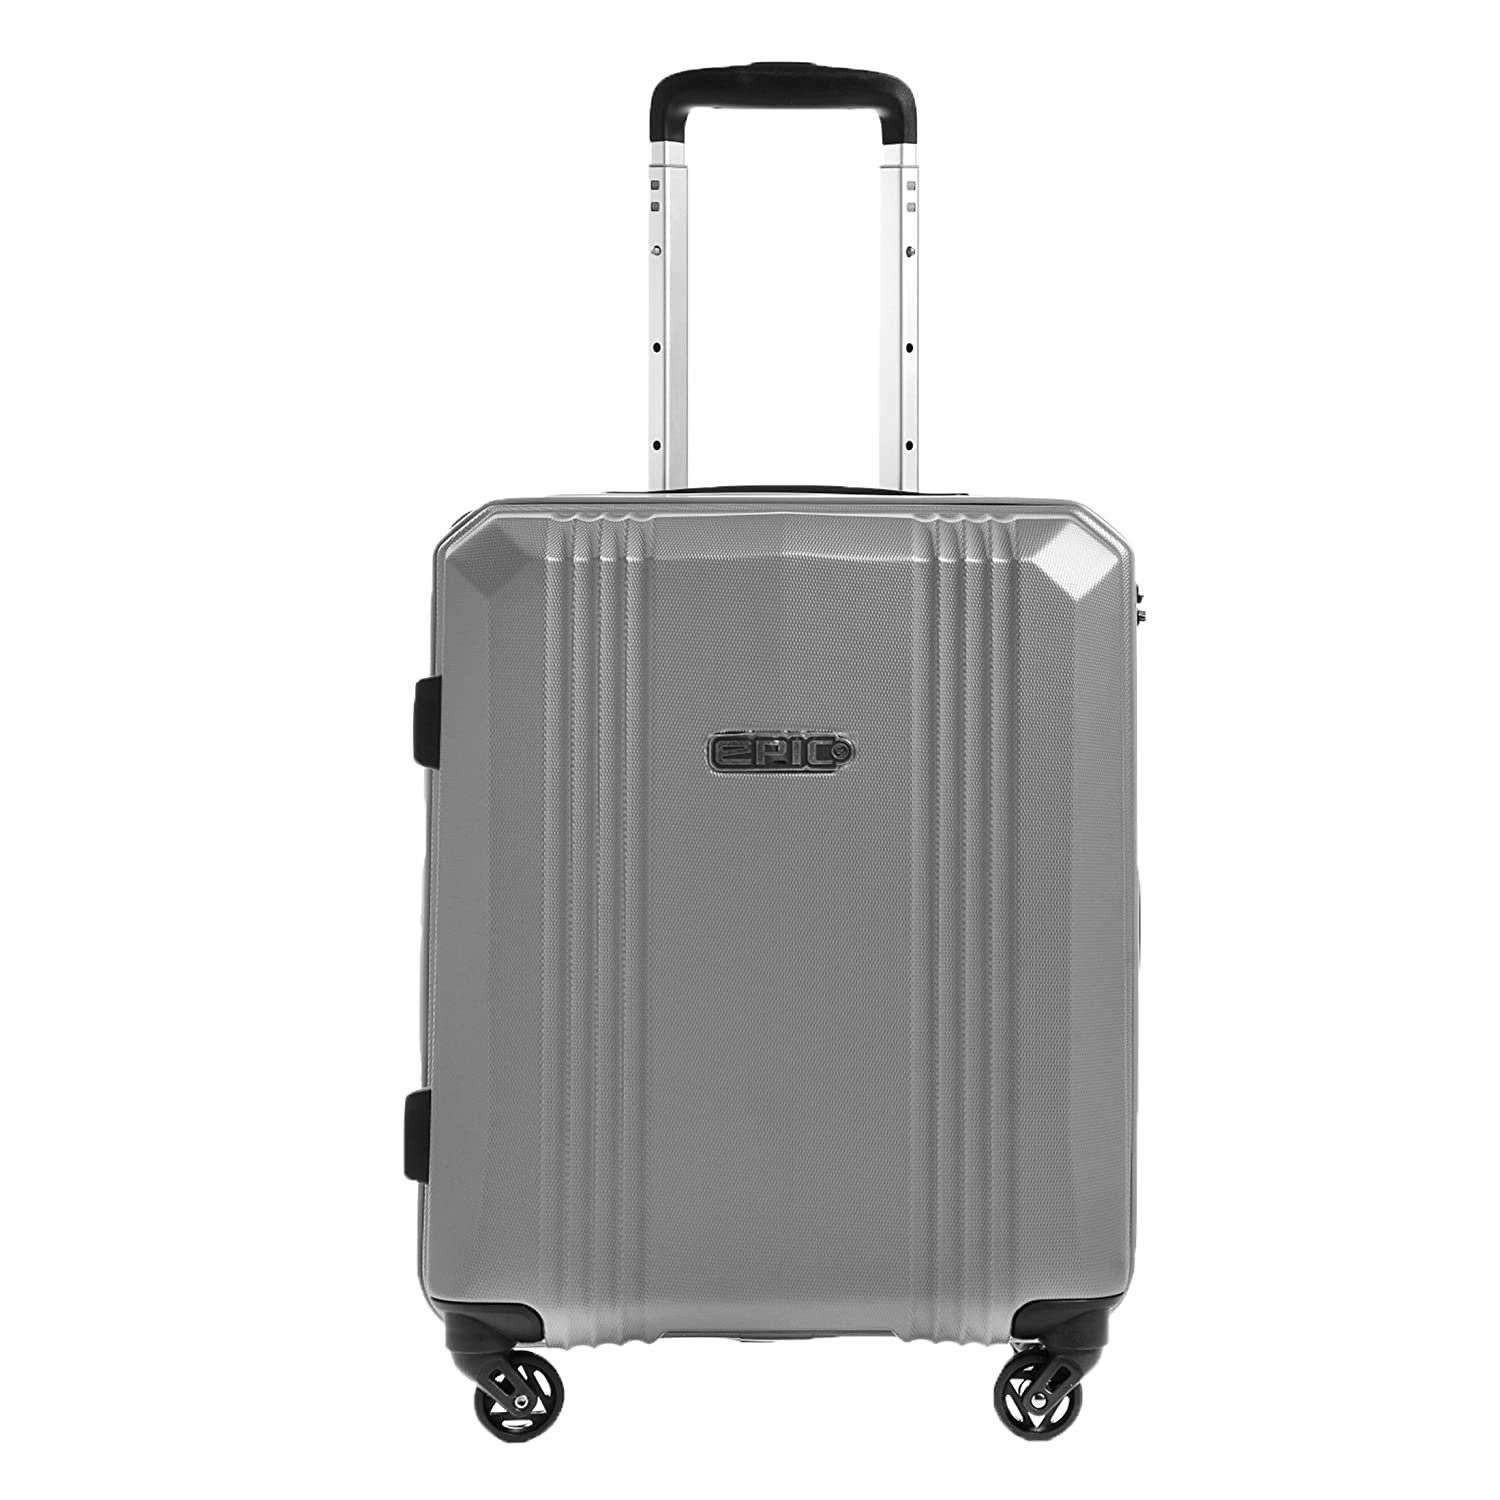 Epic Airwave valise de cabine 4 roulettes 55 cm silver colored 3WKT9z0K